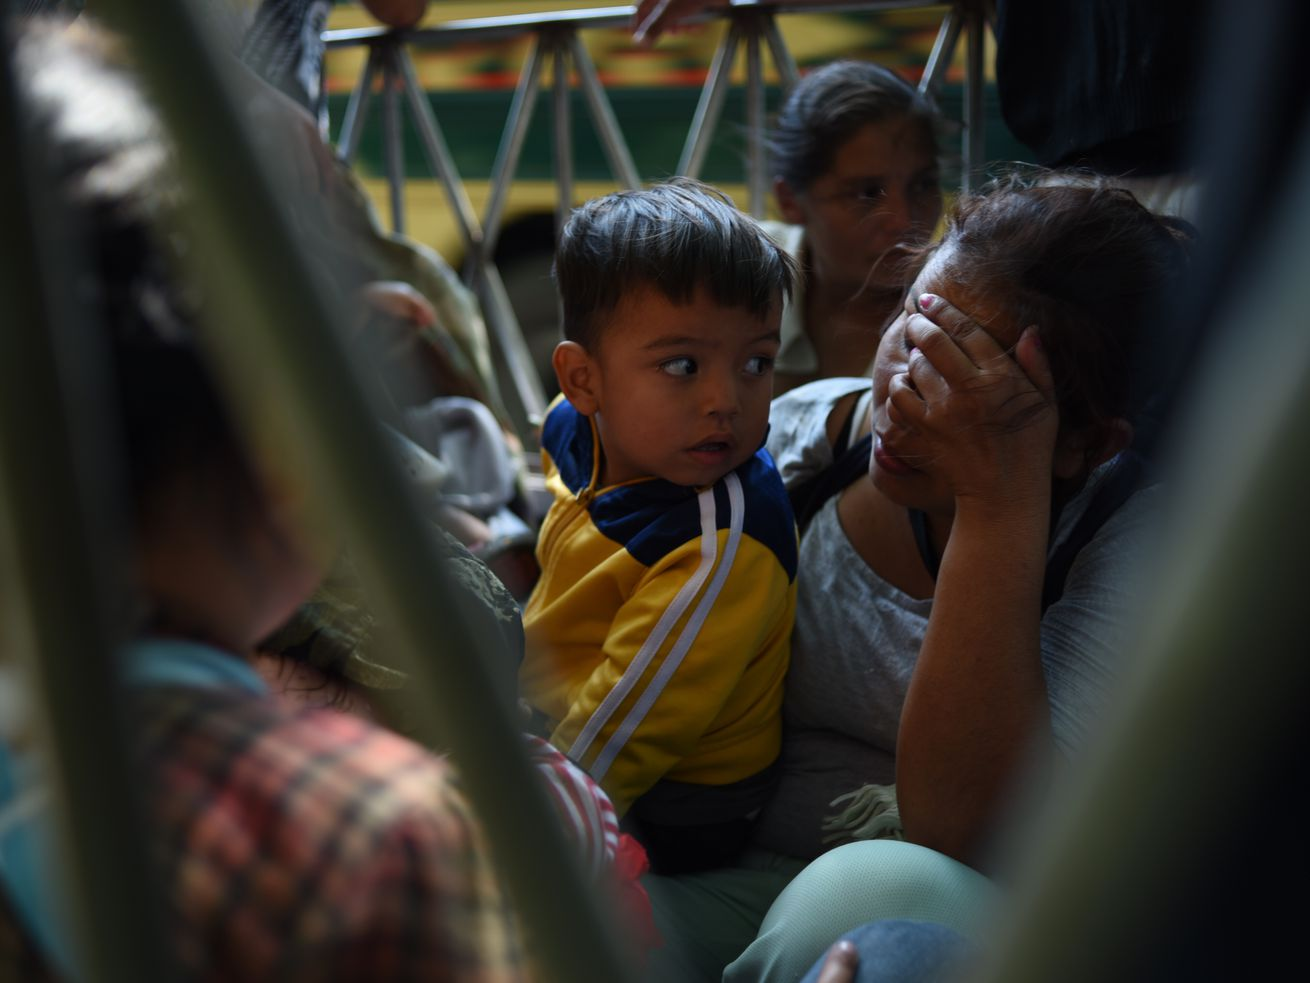 A woman with her face in her hand holds onto her young son as they travel to the United States from Honduras.